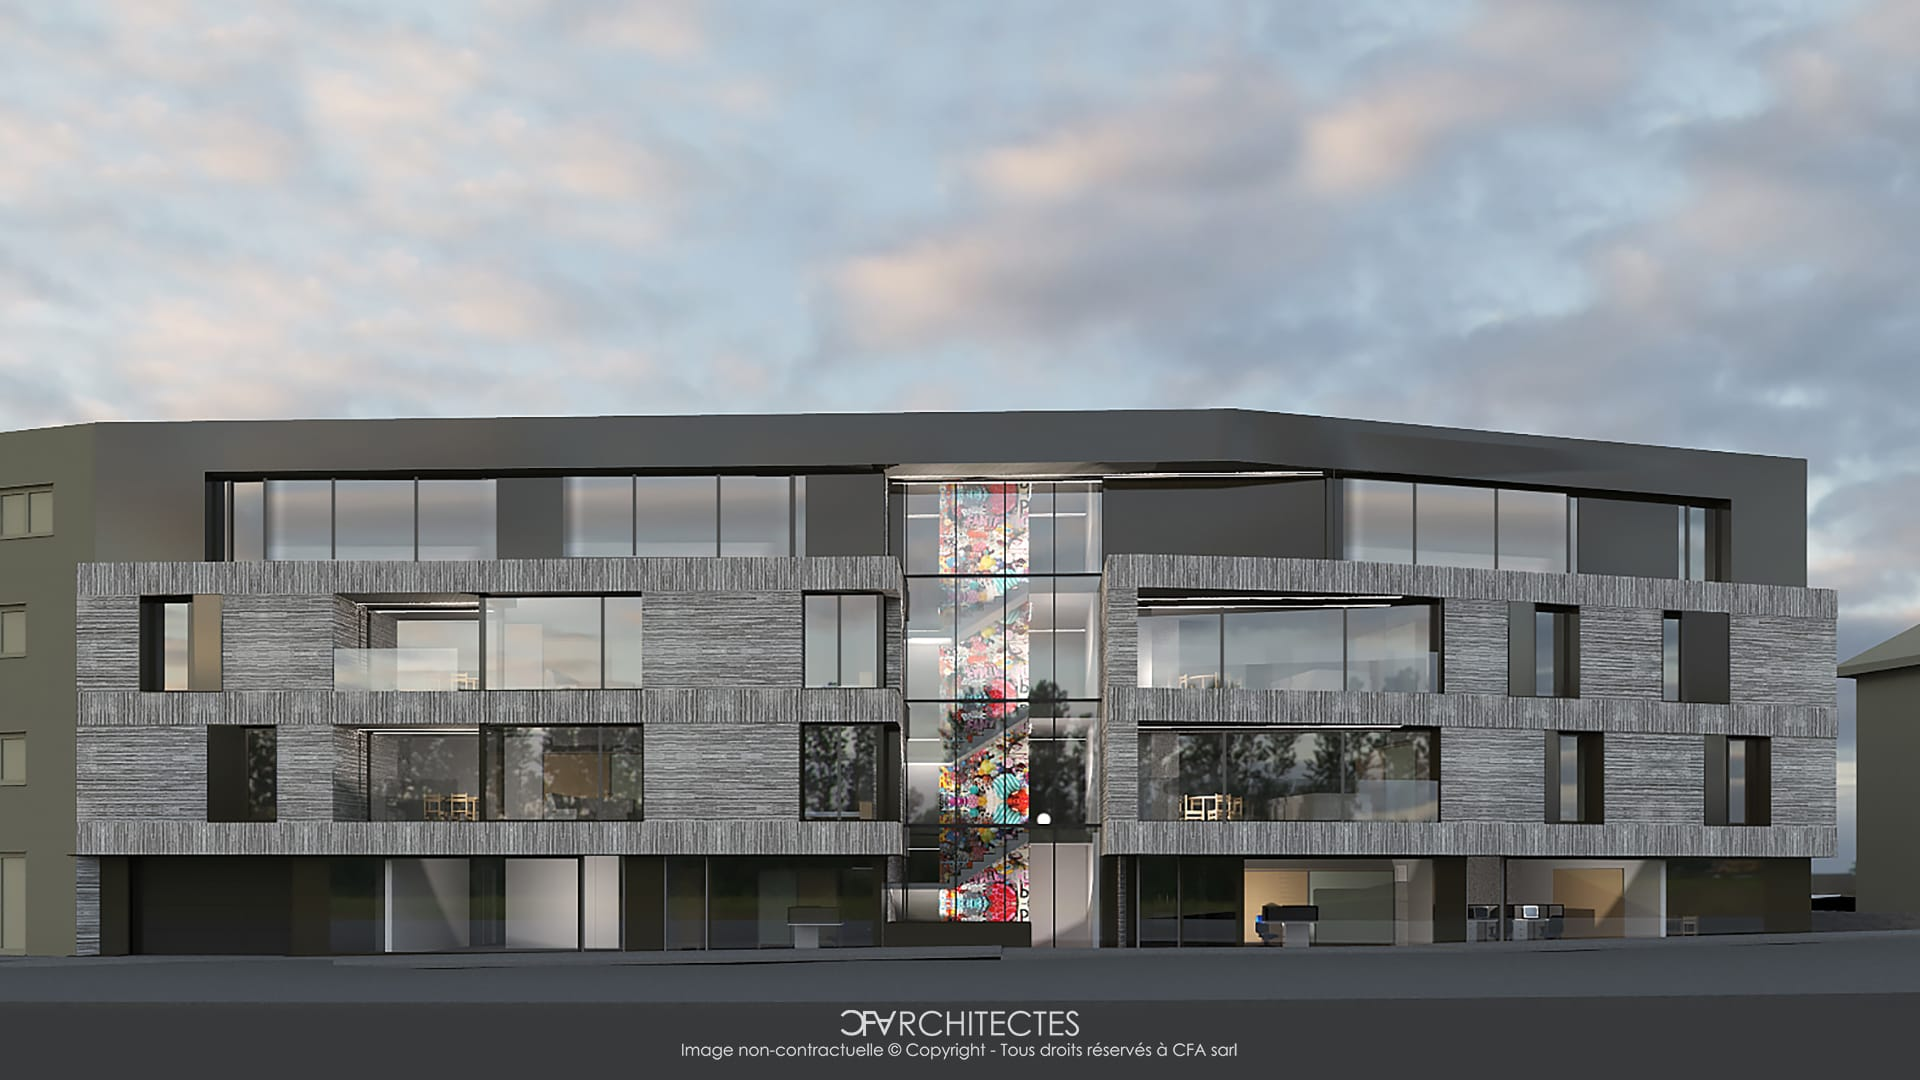 068-residence-residentiel-jean-francois-boch-luxembourg-logement-cfa-cfarchitectes-architect-luxemburg-04